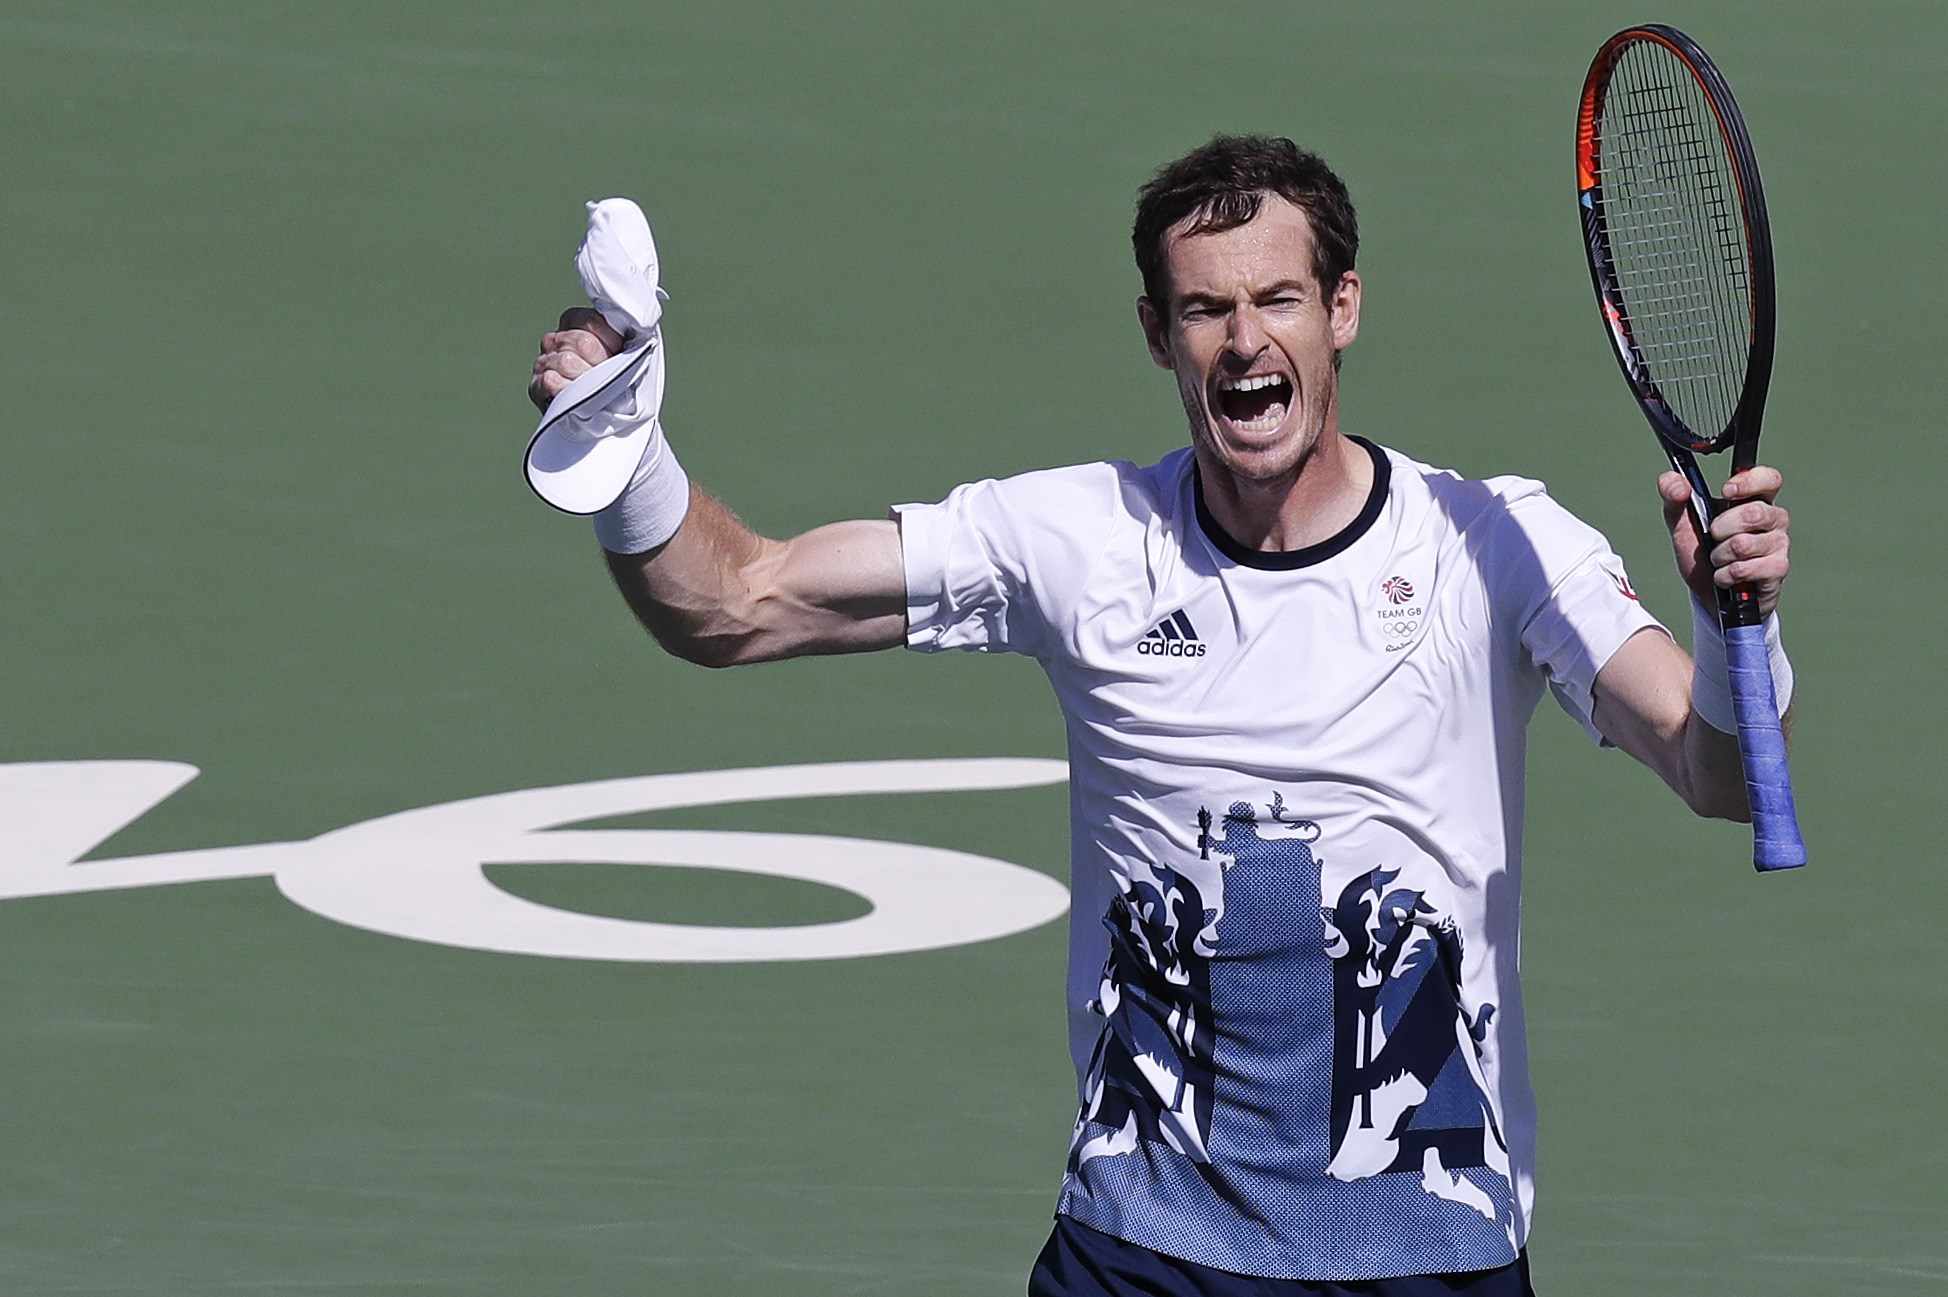 Andy Murray, of England, raises his arms after defeating Kei Nishikori, of Japan, during their semi-final round match at the 2016 Summer Olympics in Rio de Janeiro, Brazil, Saturday, Aug. 13, 2016. (AP Photo/Charles Krupa)